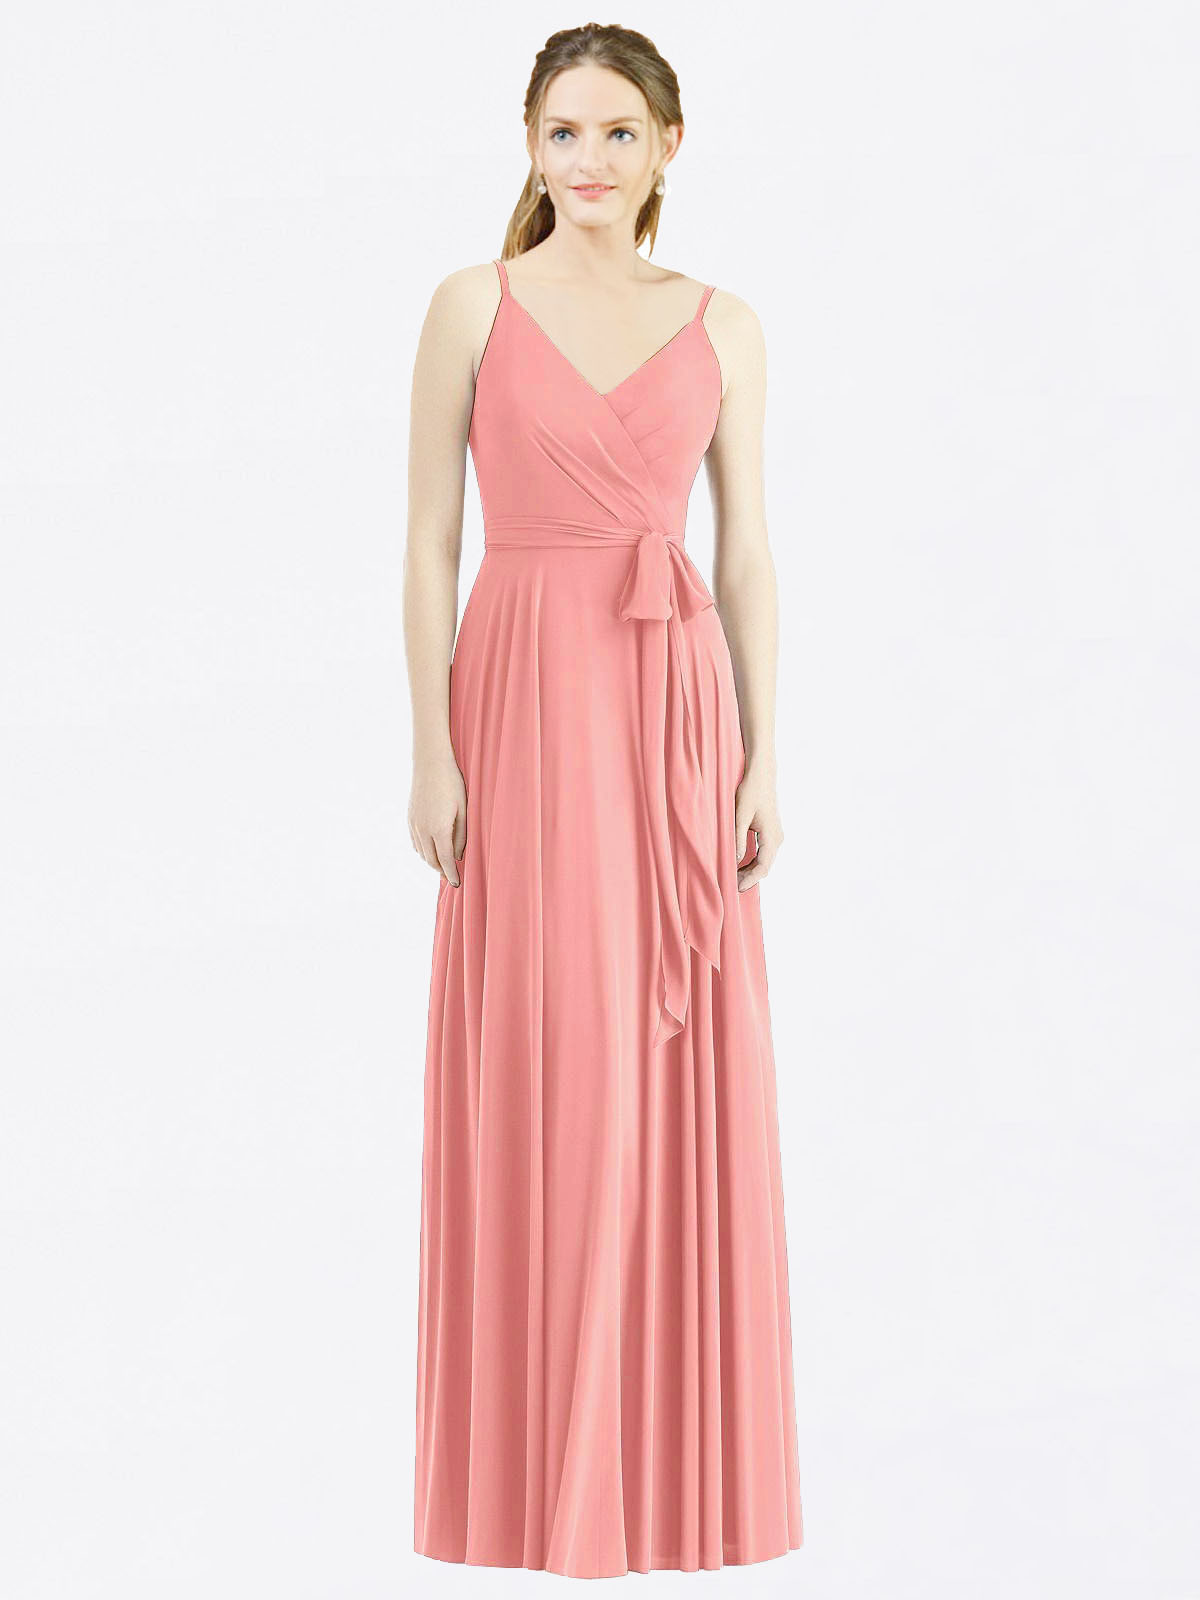 Long A-Line Spaghetti Straps, V-Neck Sleeveless Watermelon Chiffon Bridesmaid Dress Madilyn